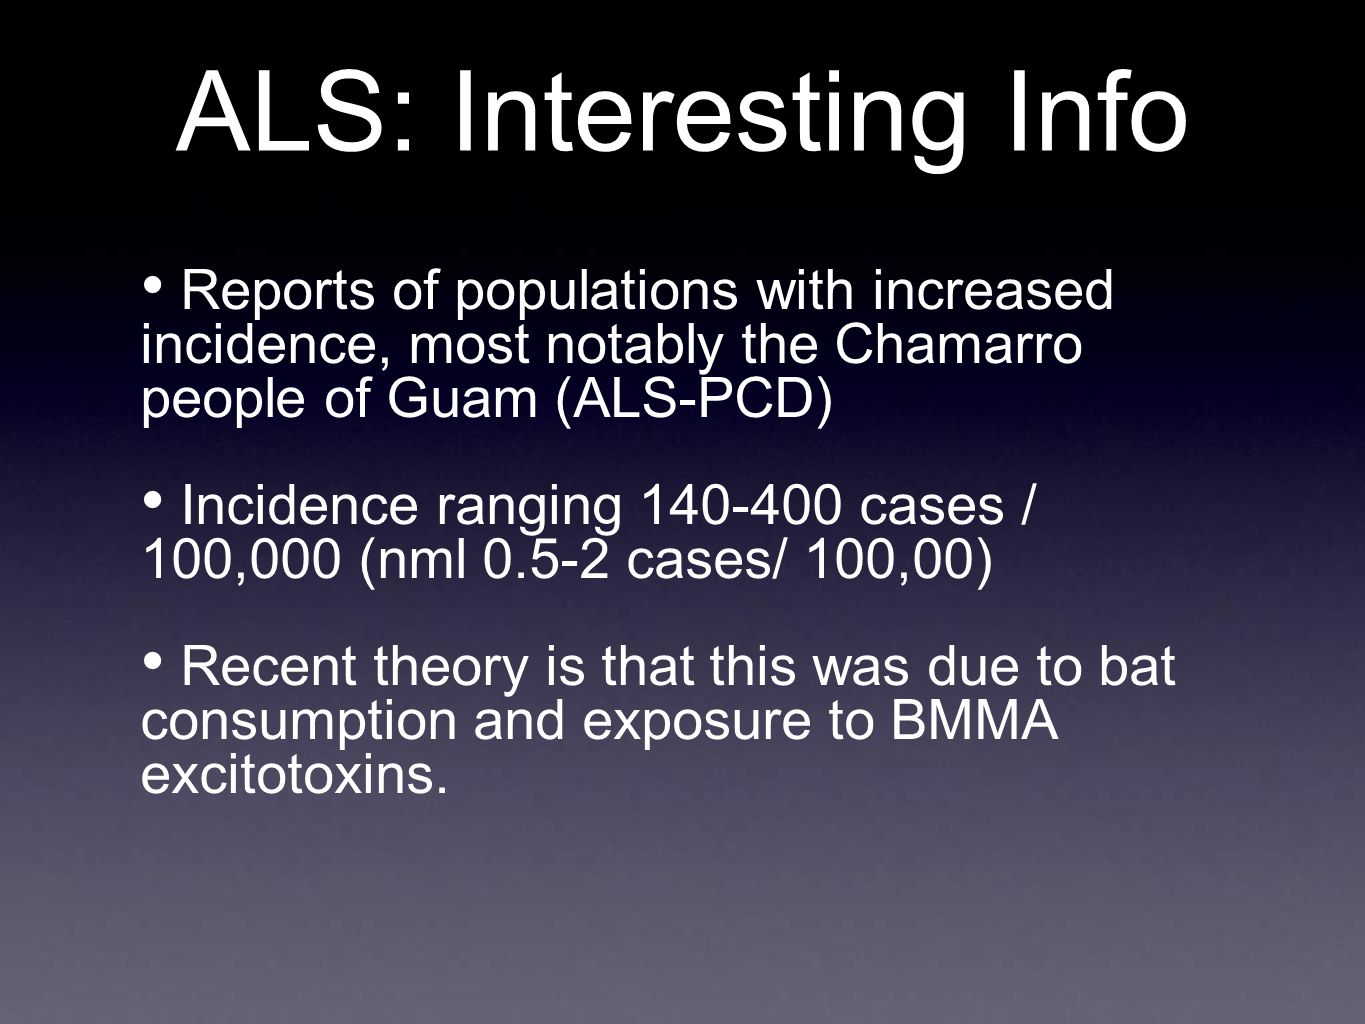 ALS: Interesting Info Reports of populations with increased incidence, most notably the Chamarro people of Guam (ALS-PCD)